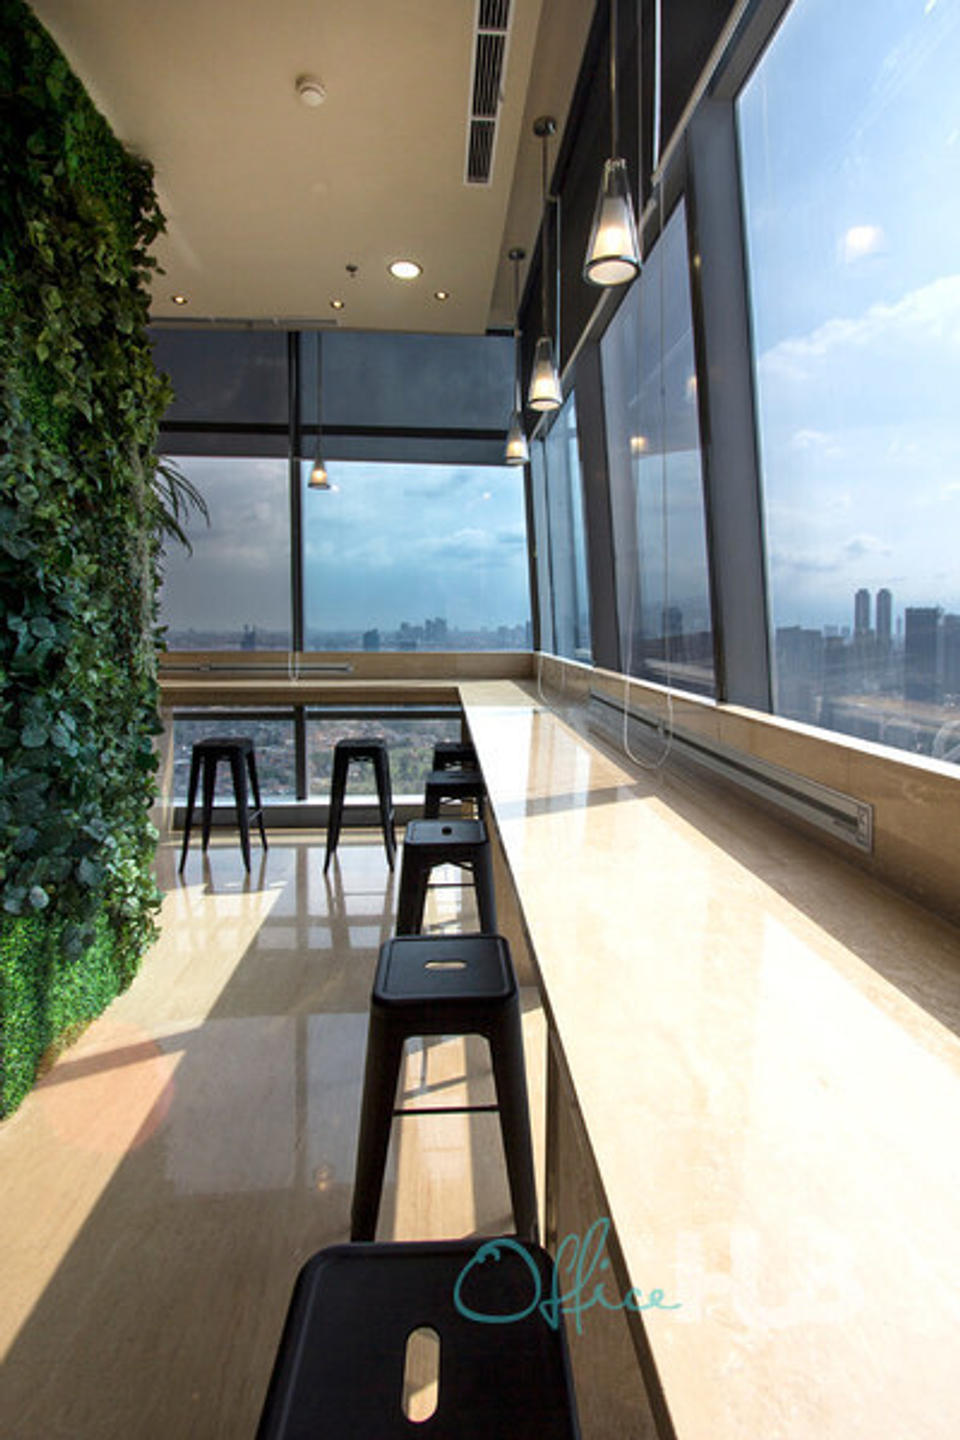 1 Person Coworking Office For Lease At Jl. Casablanca Raya Kav. 88 88 Office Tower, Jakarta, Jakarta, 12870 - image 2